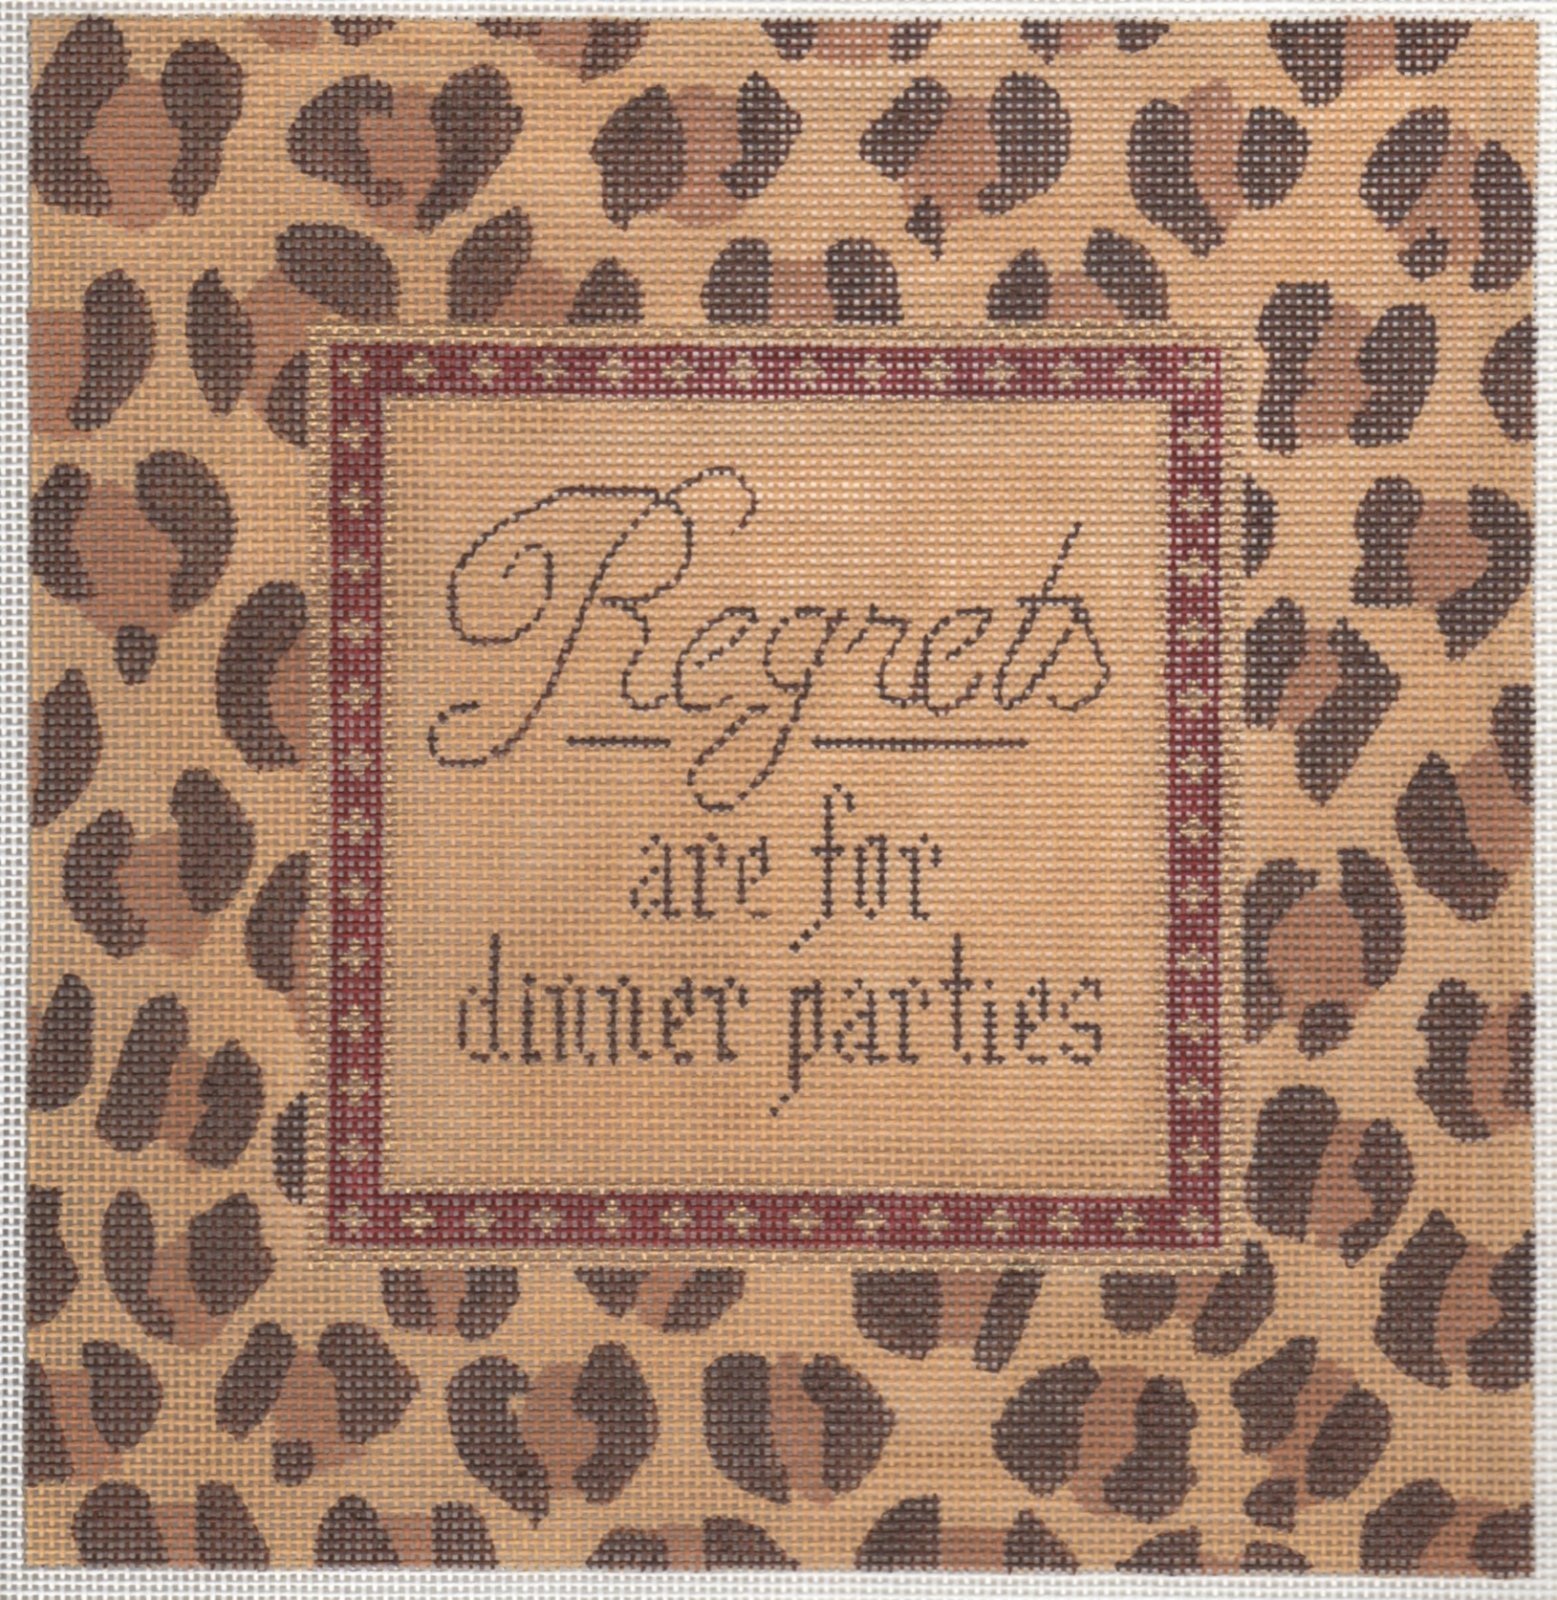 Regrets are for Dinner Parties